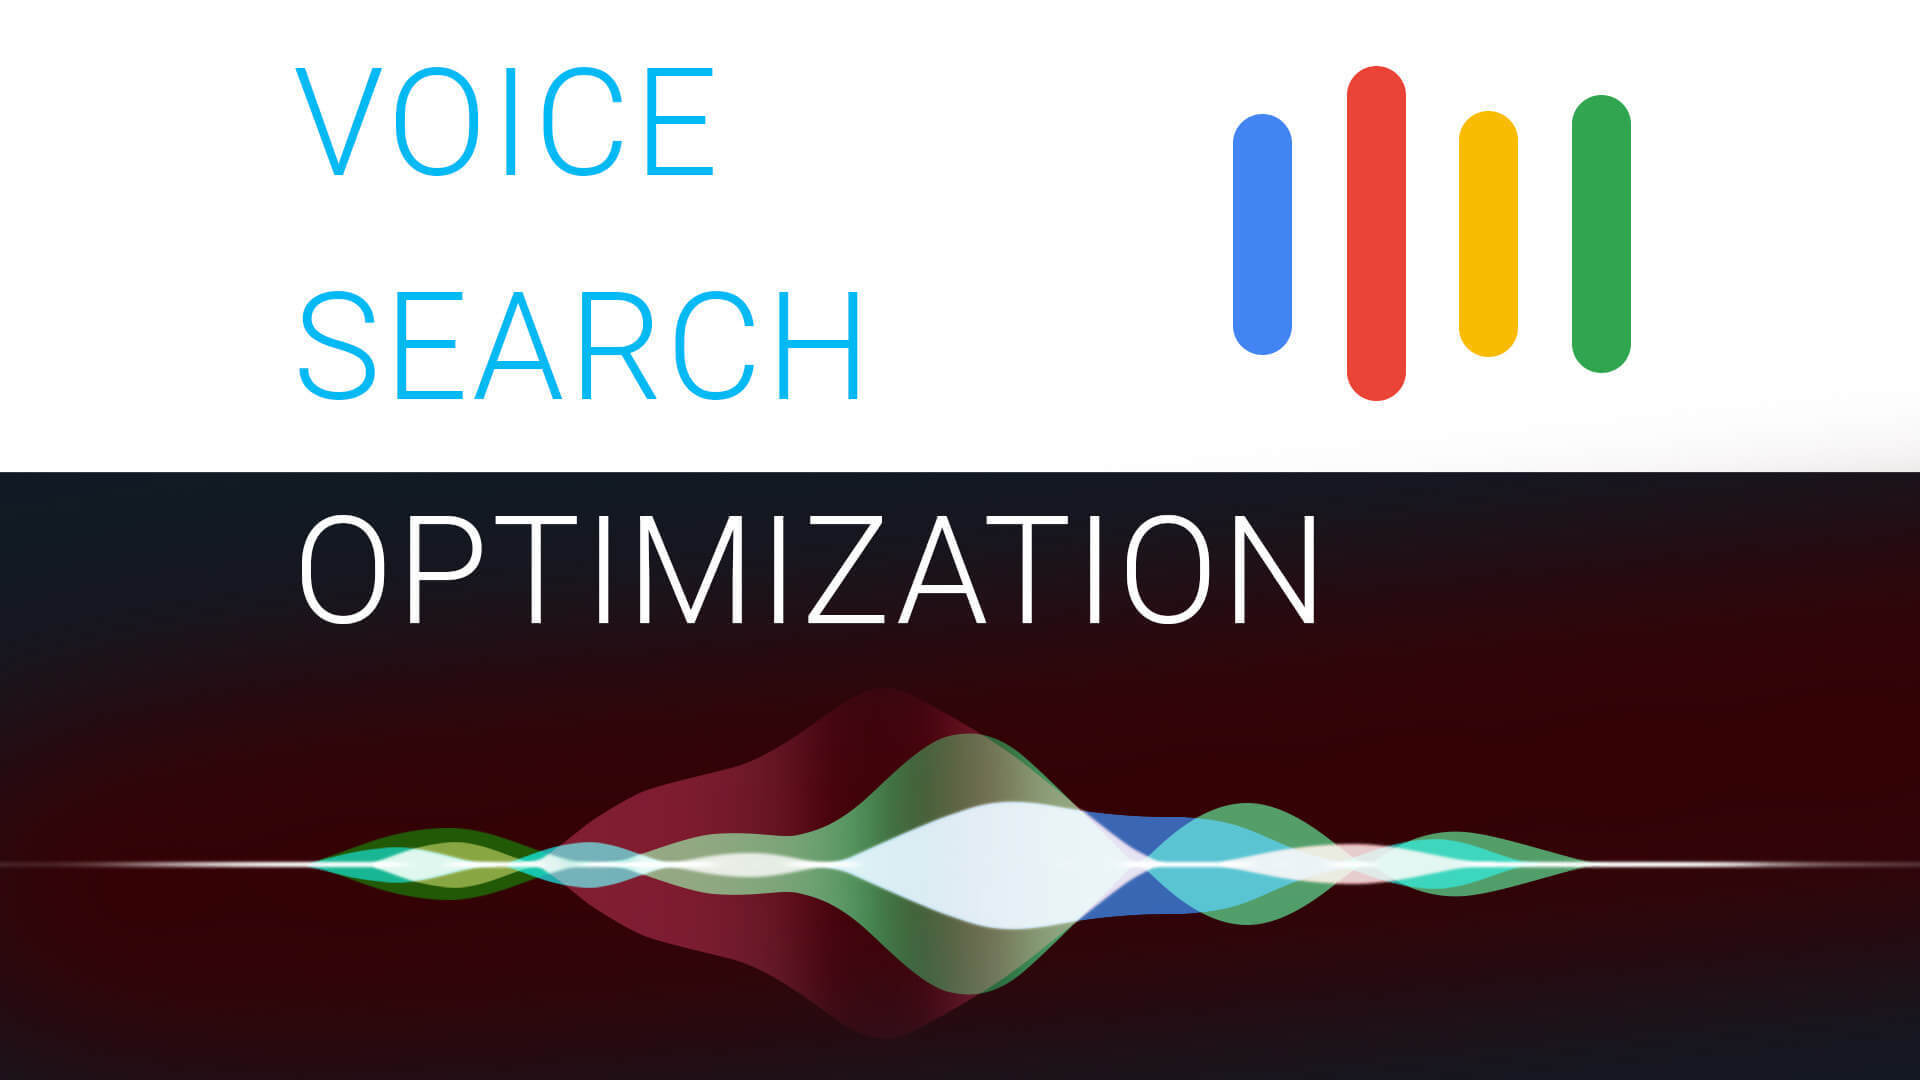 How to implement voice search optimization into your ecommerce strategy